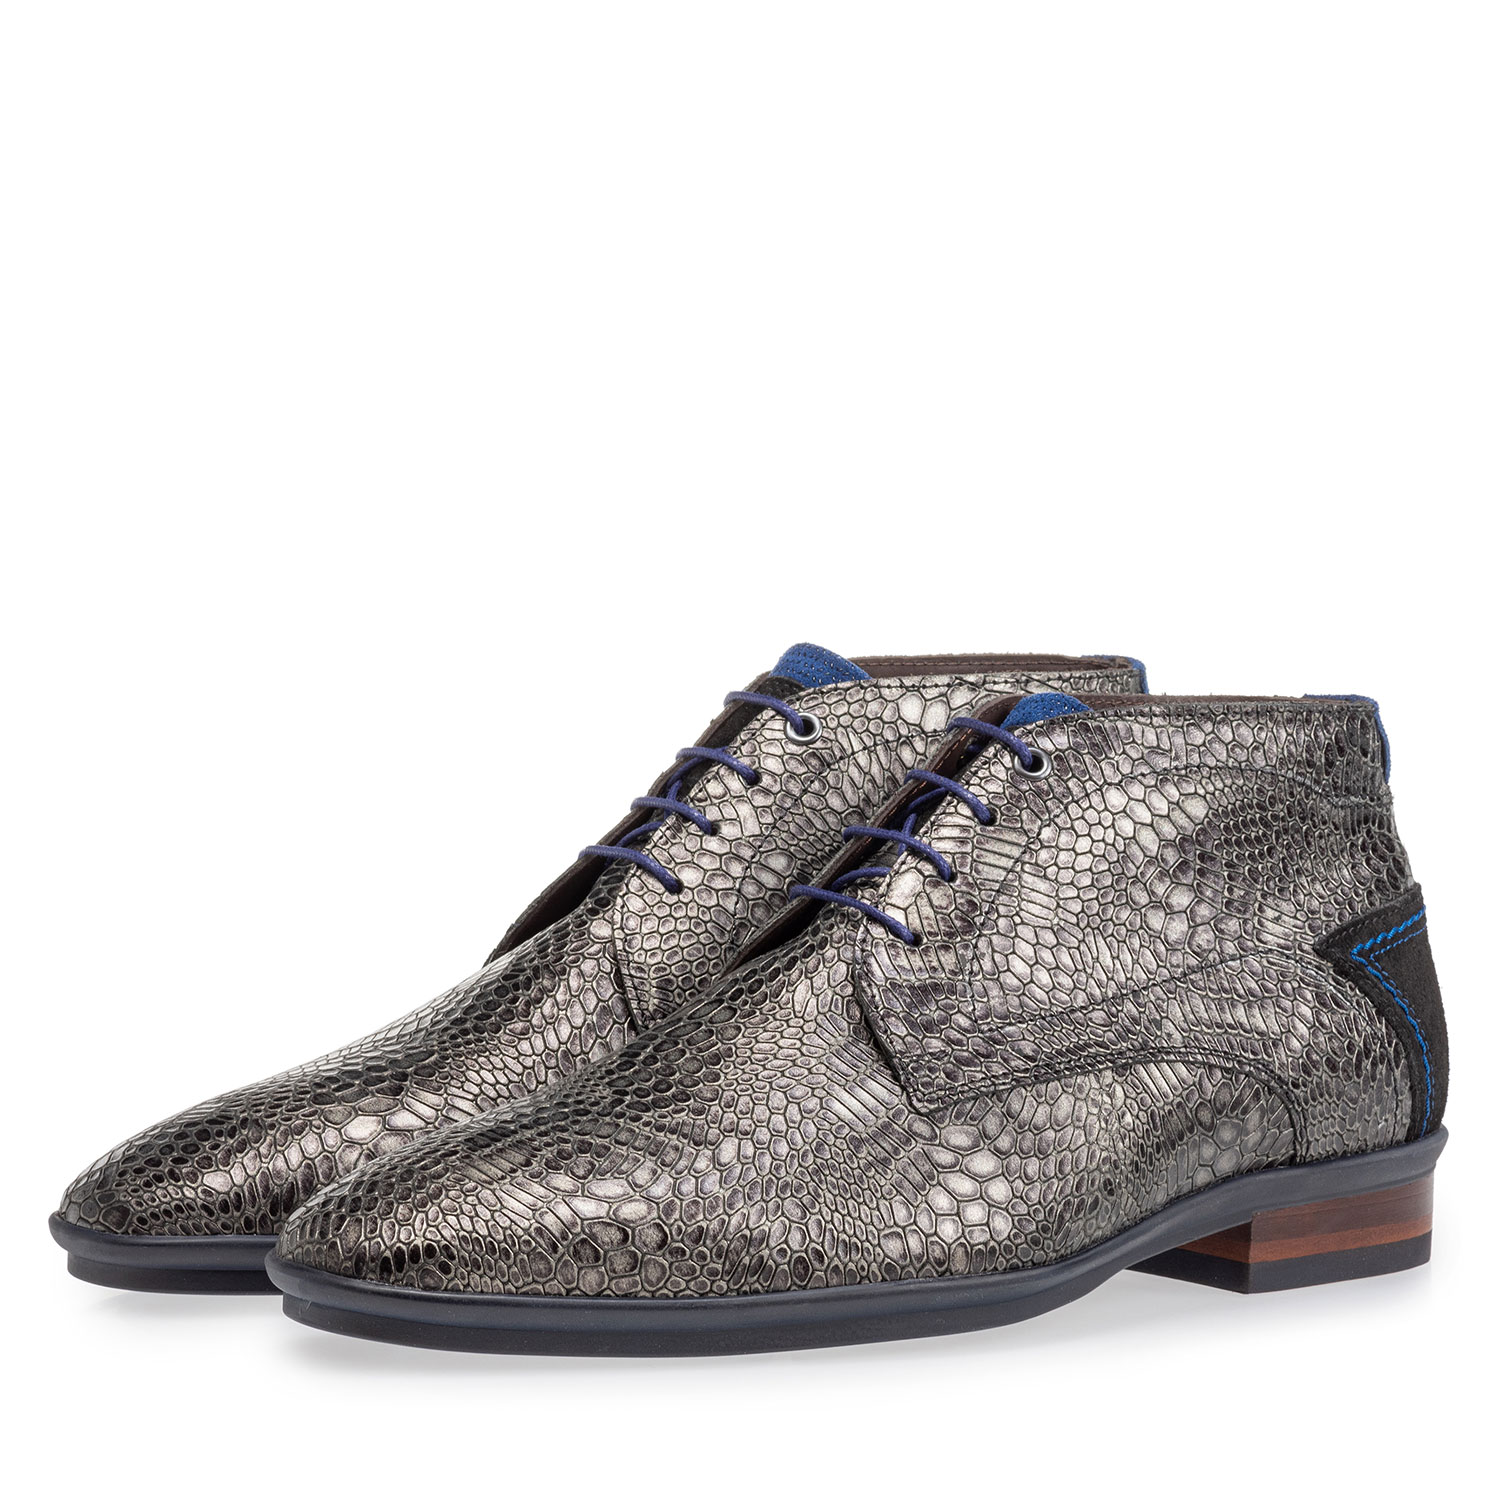 20440/34 - Lace boot with print grey